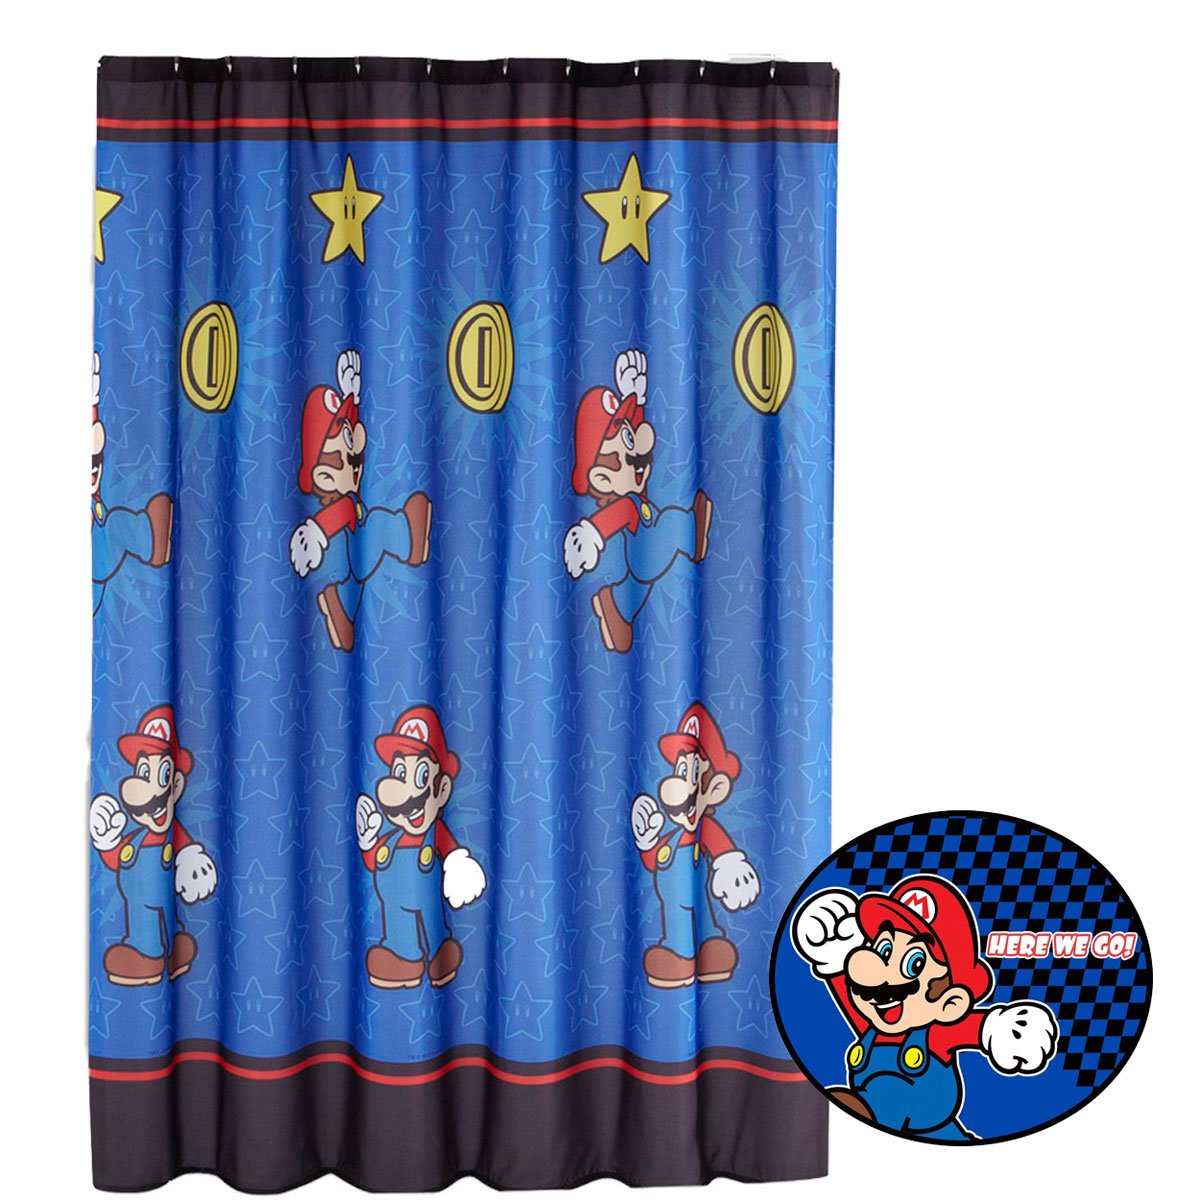 2pc Super Mario Brothers Shower Curtain And Bath Mat Set Nintendo Simply The Best Bathroom Accessories Amazonde Kuche Haushalt